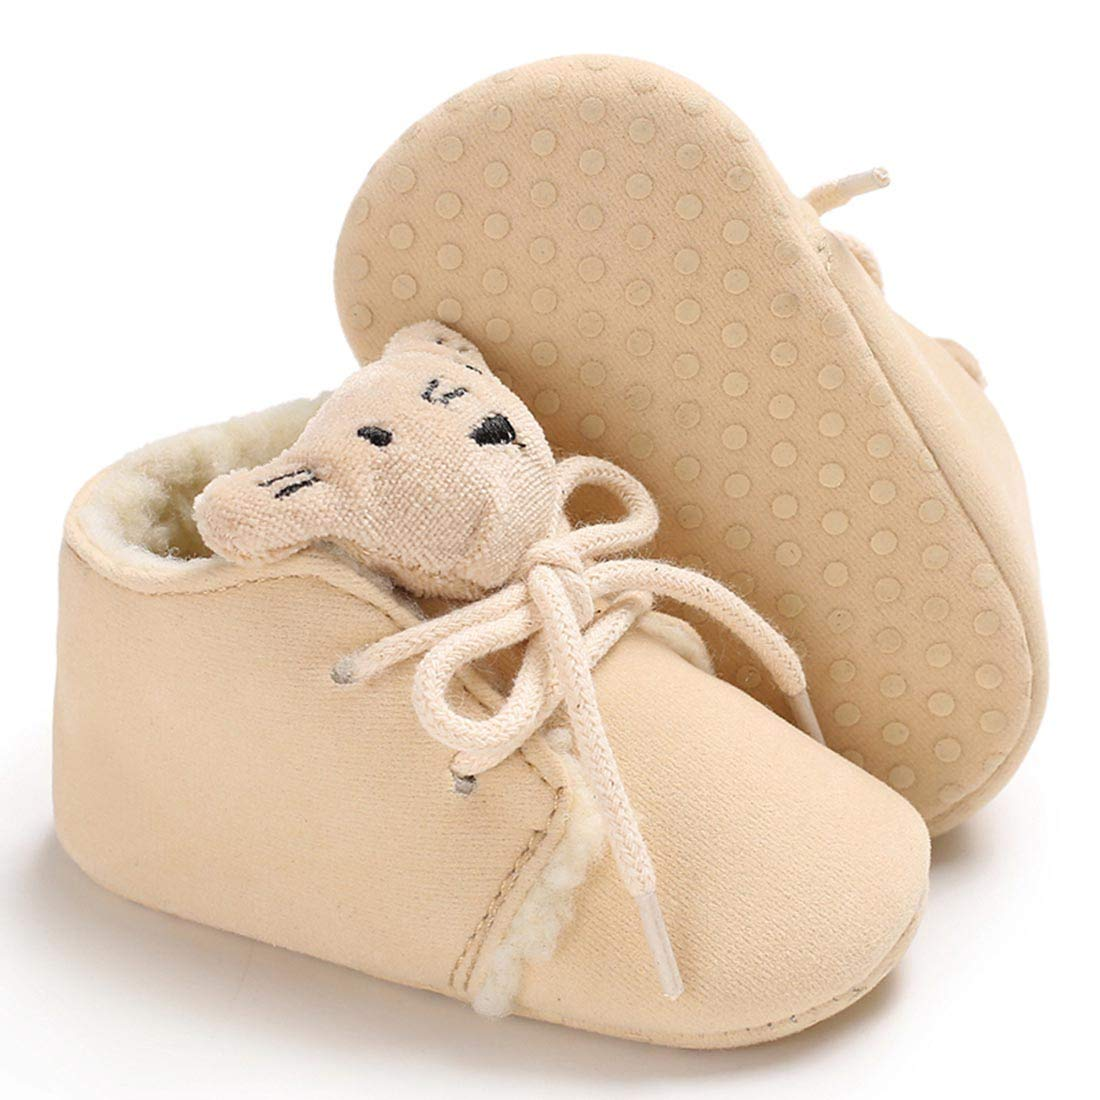 Infant Fuax Fleece Lace Up Snow Boots First Walker Shoes for Girls Boys YIBLBOX Newborn Baby Booties